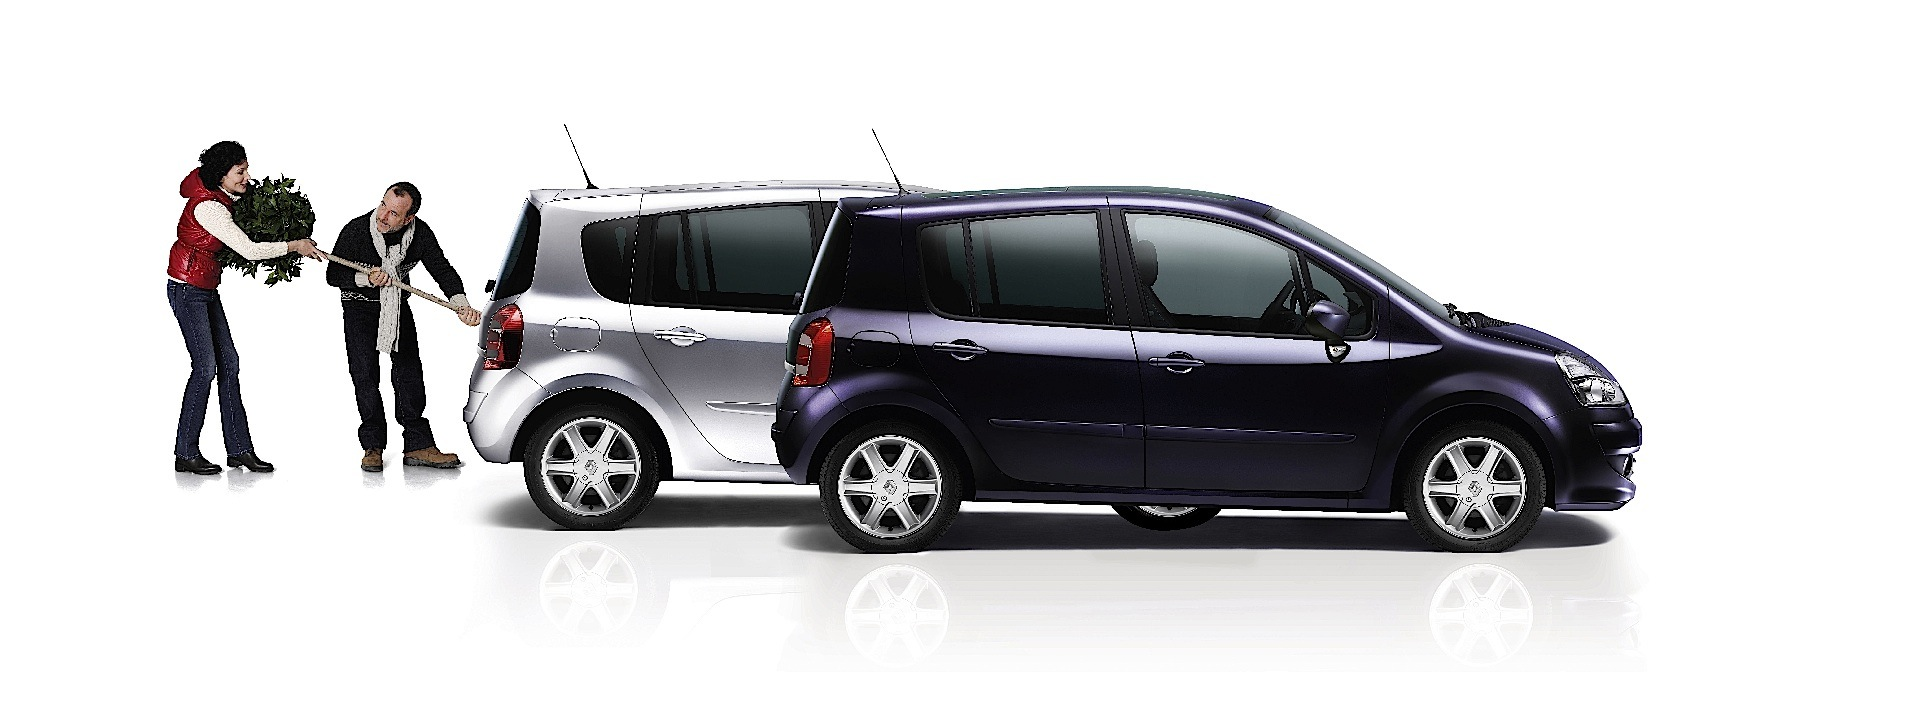 renault grand modus 2013 pictures #8